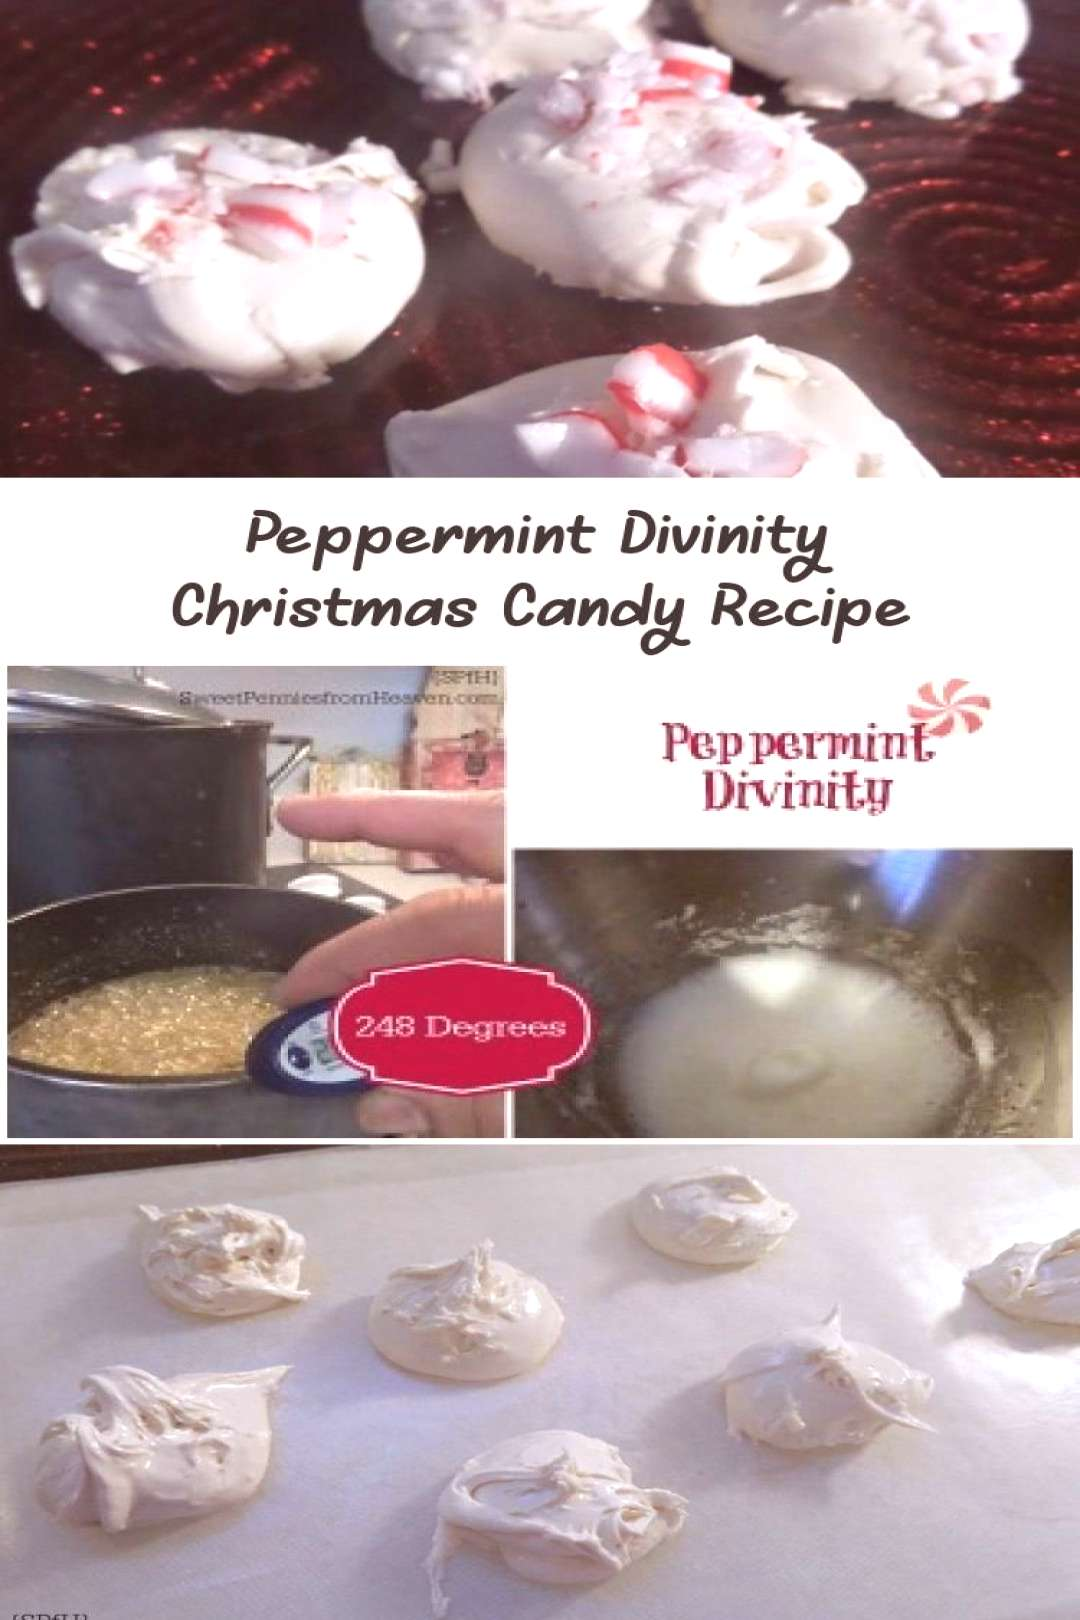 Peppermint Divinity - Sweet Pennies from Heaven - Recette Divinity - Divinity… ... -  Divinité d